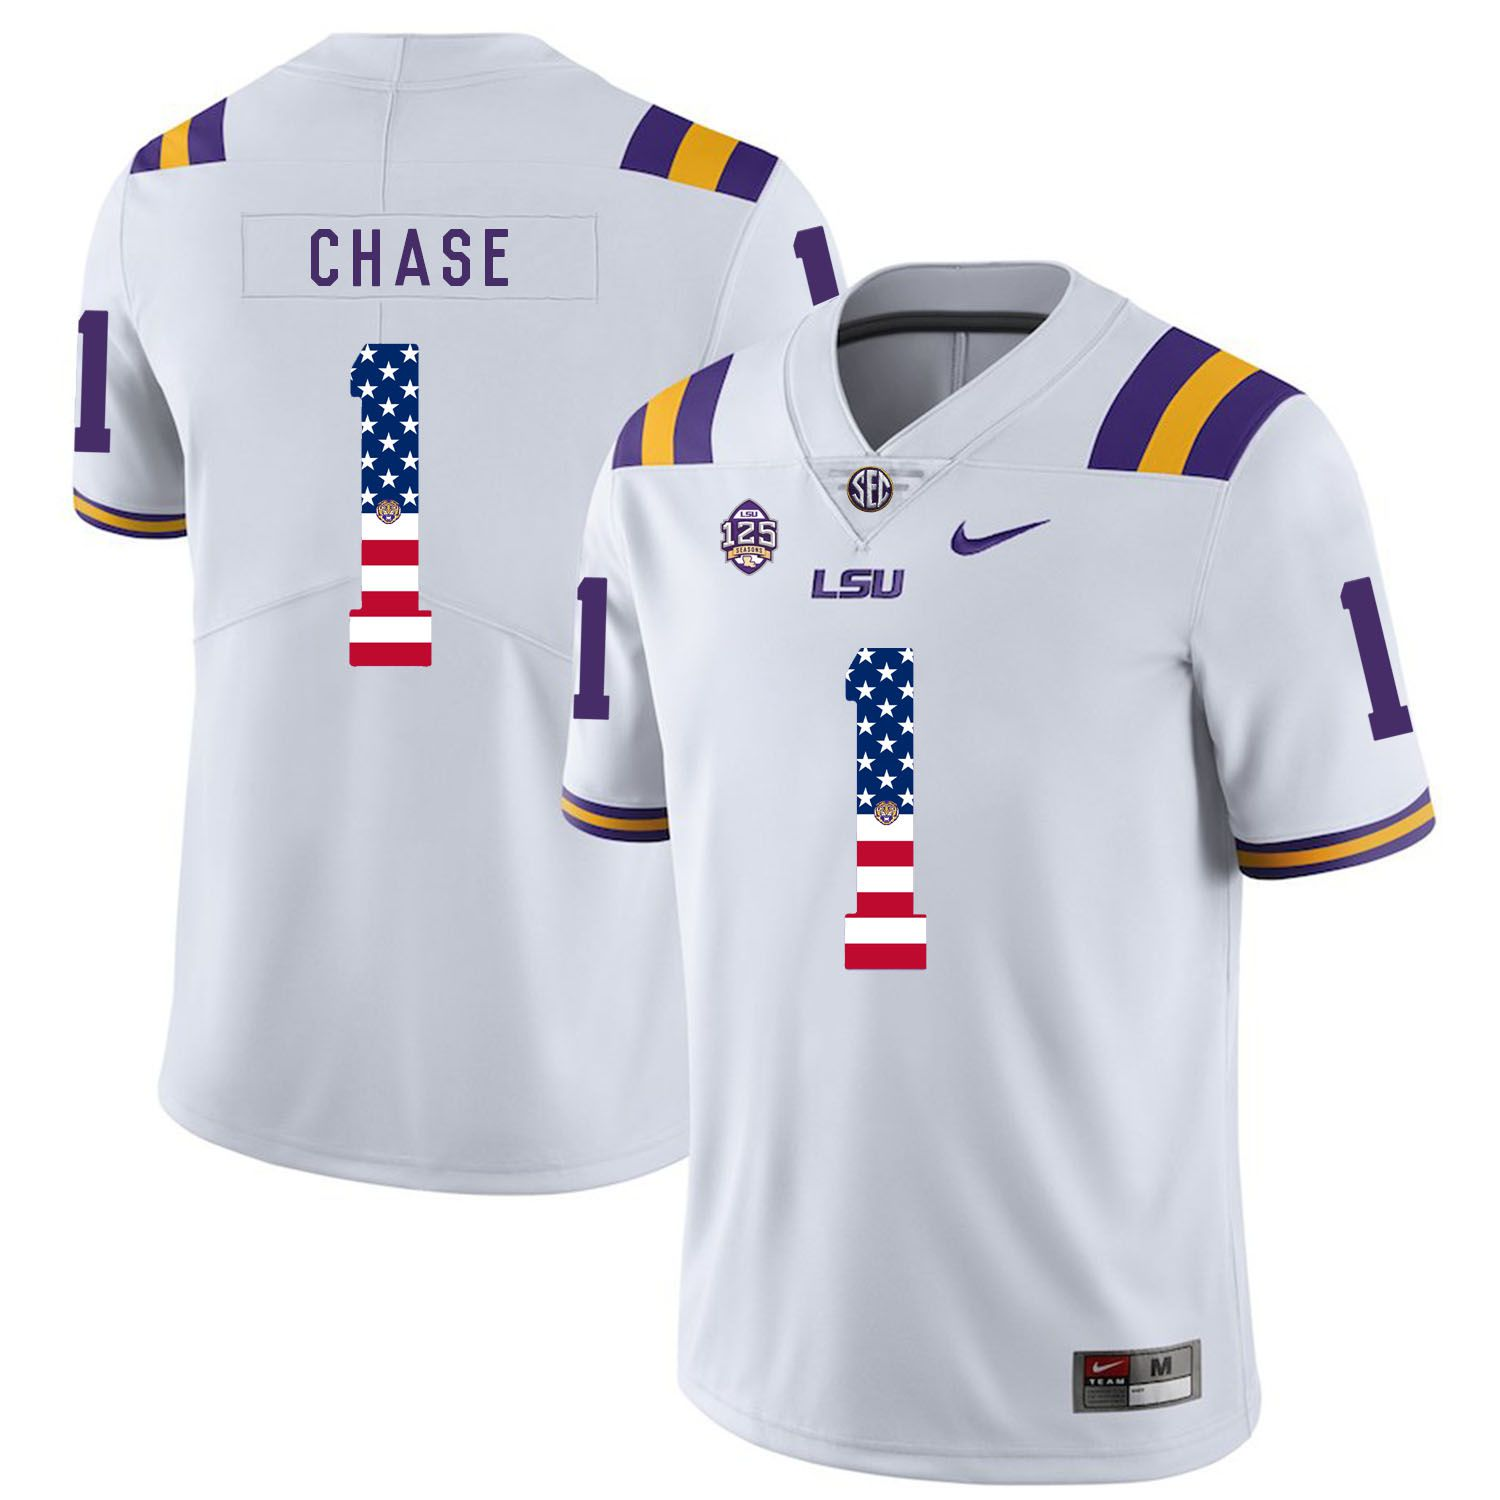 Men LSU Tigers 1 Chase White Flag Customized NCAA Jerseys